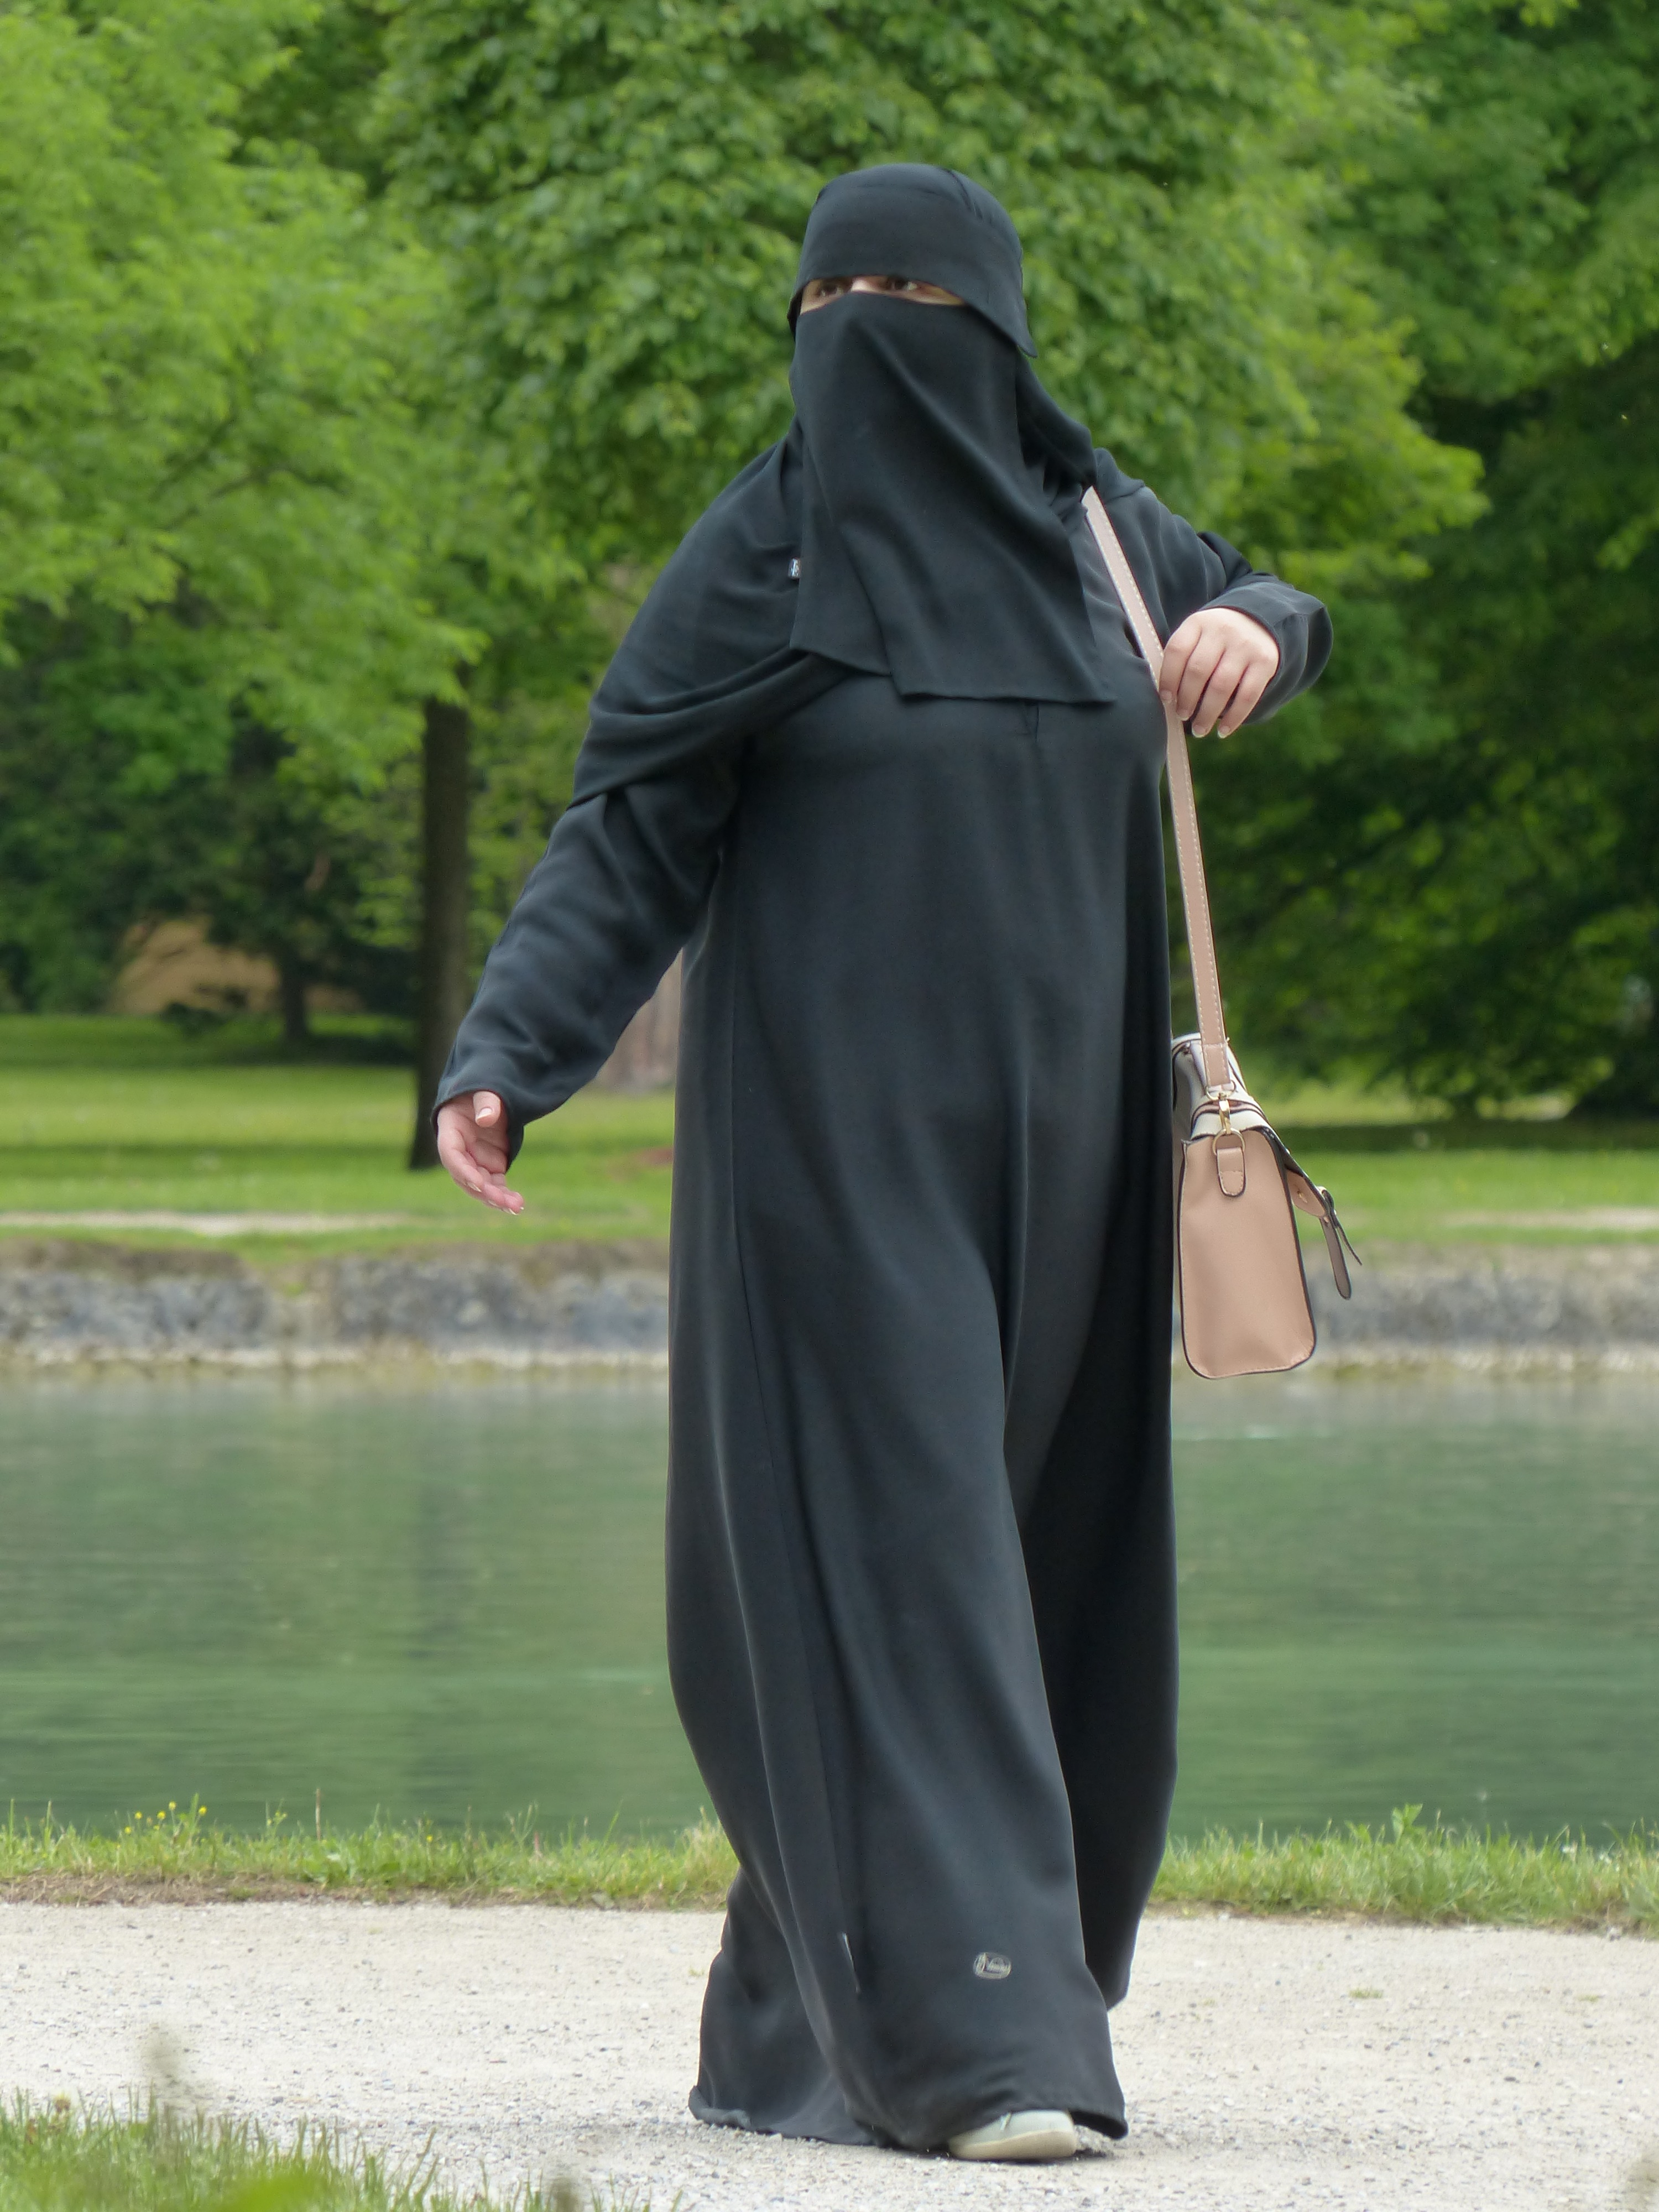 Germany chancellor endorses partial ban on full face veils